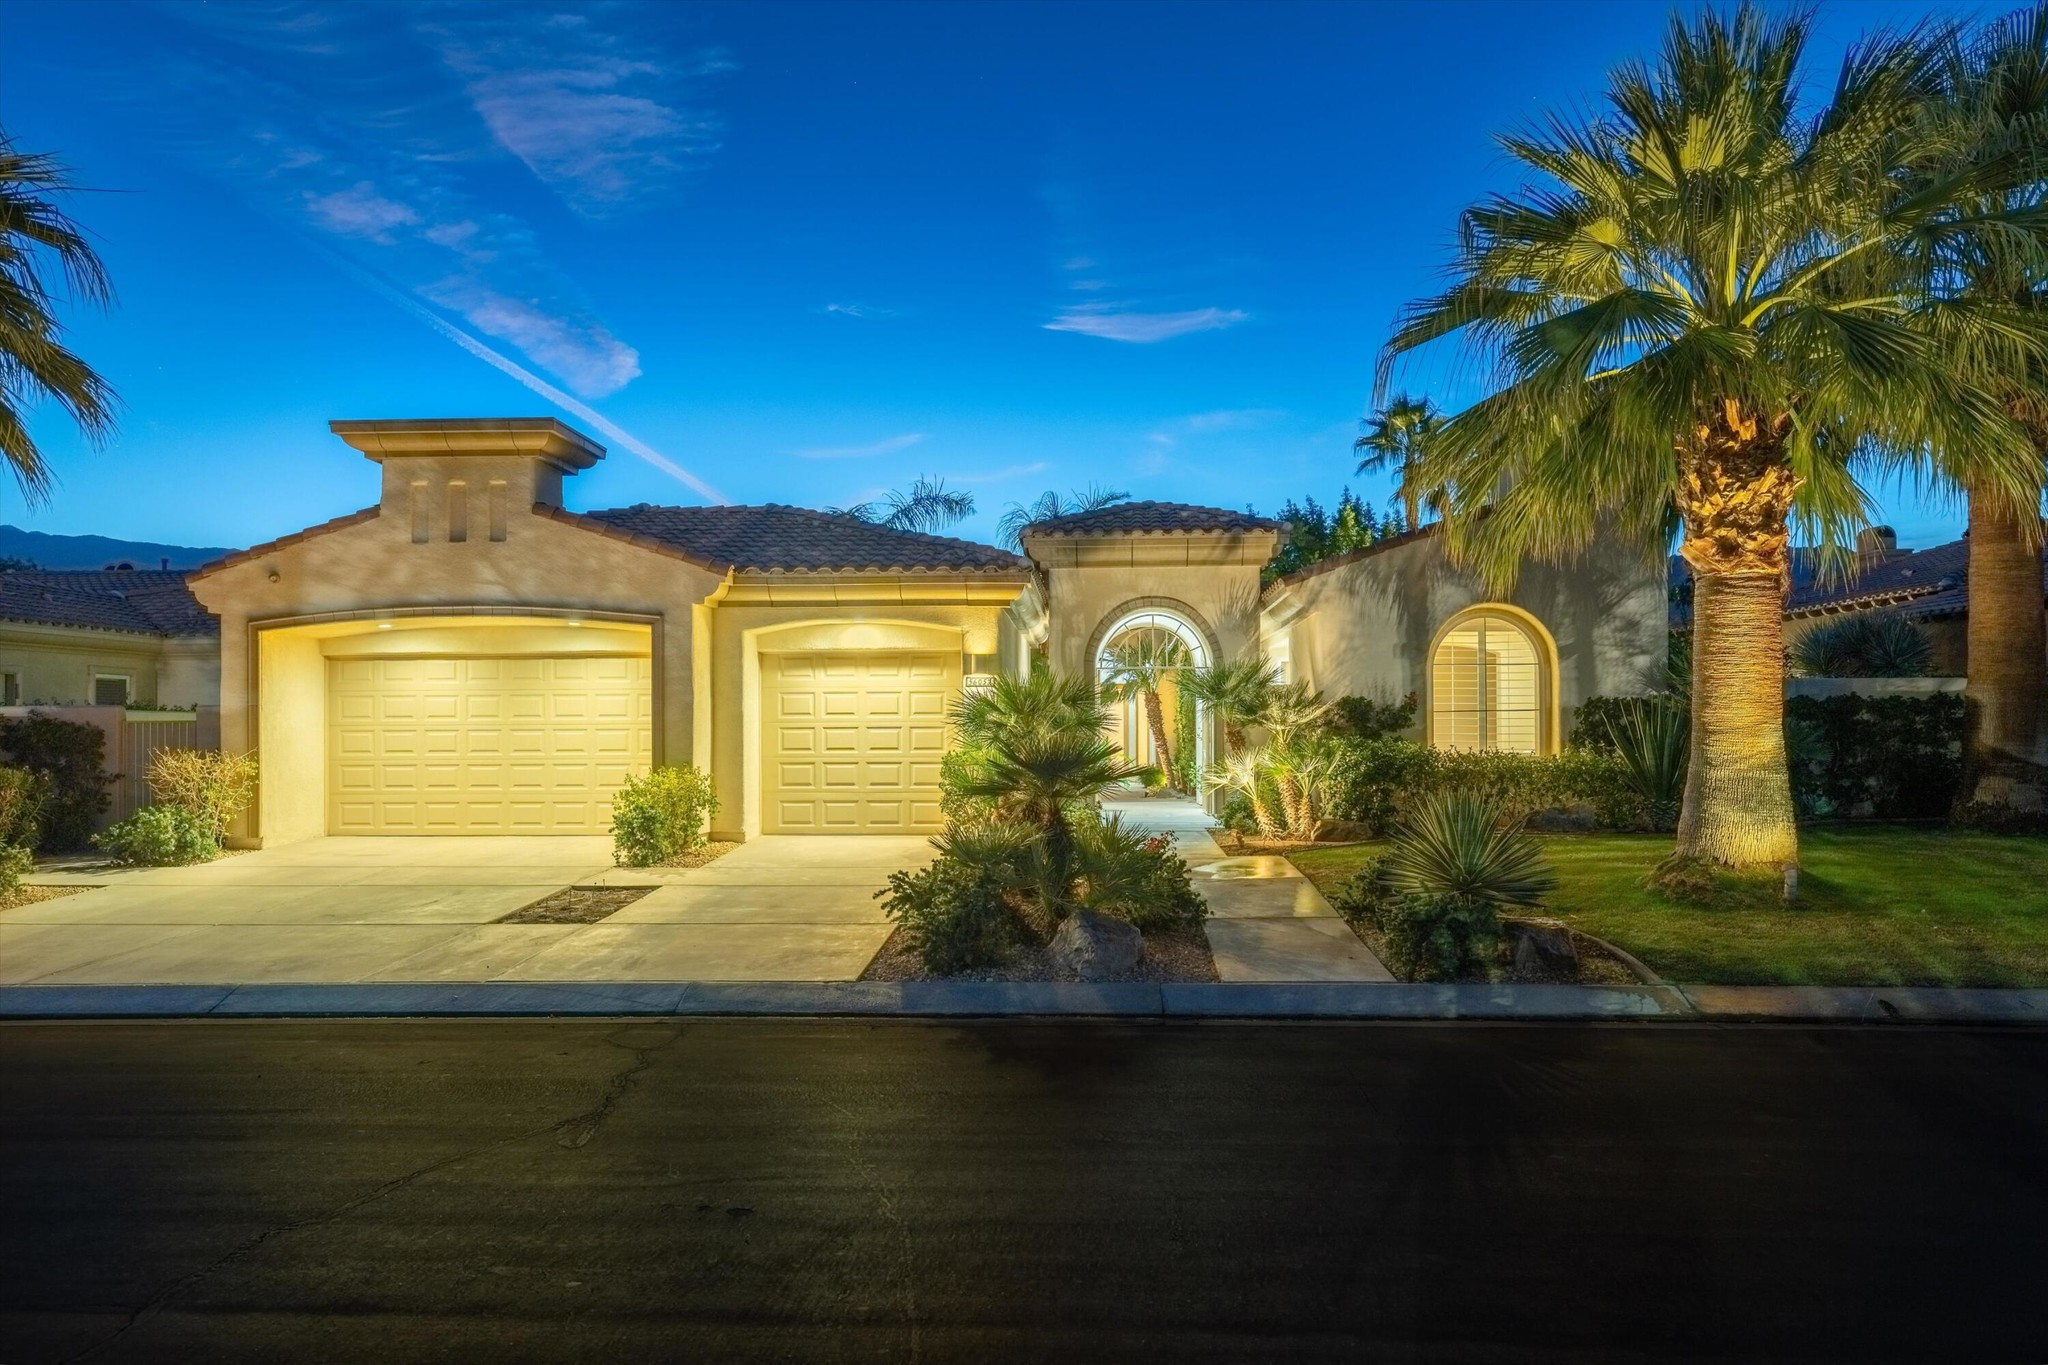 3-Story House In Pga West